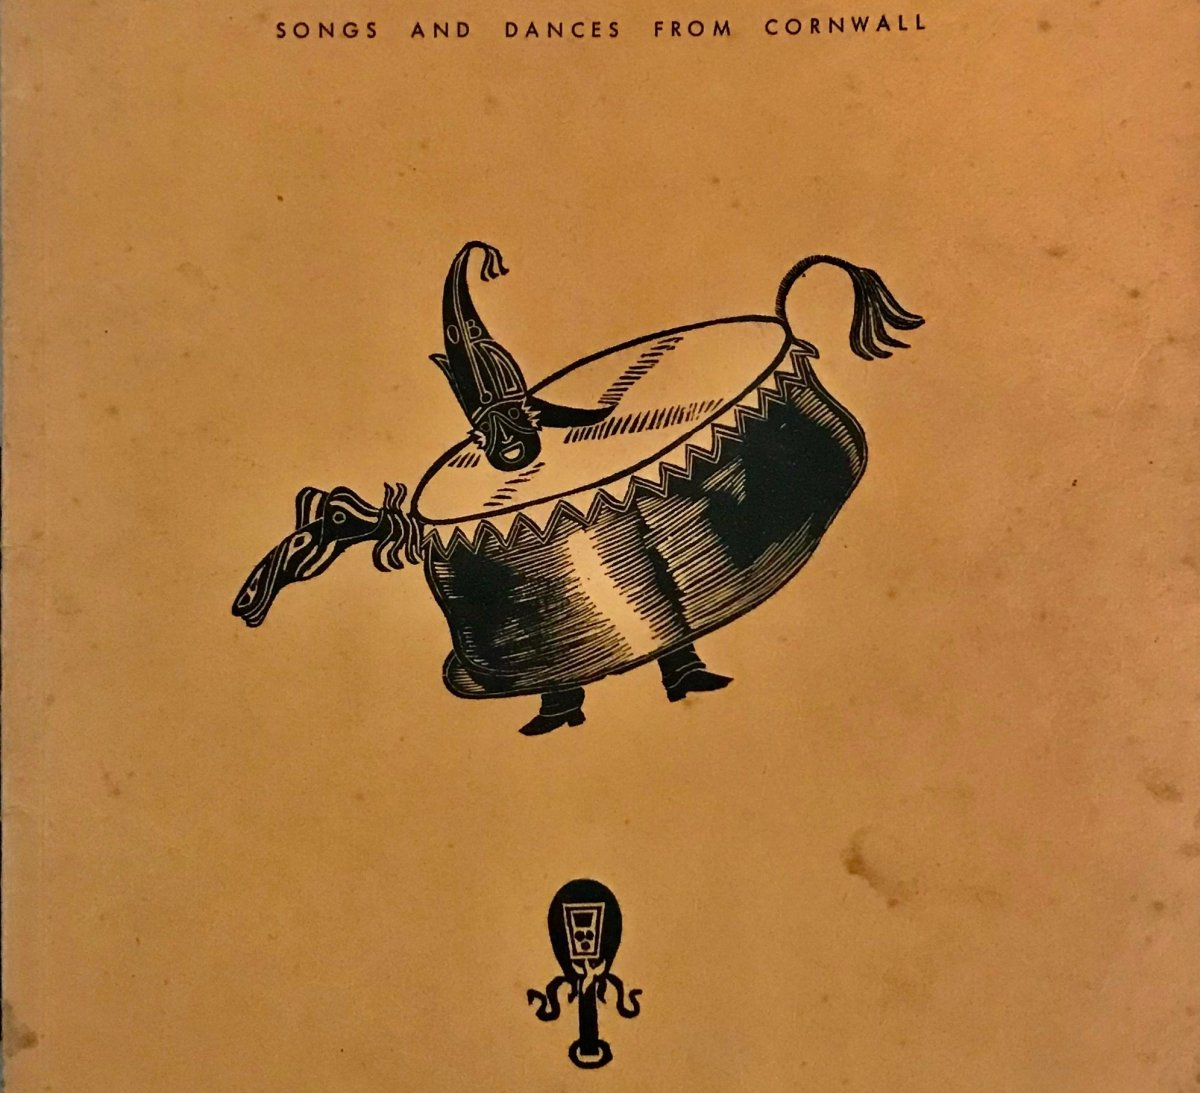 Cover of Inglis Gundry Canow Kernow book 1966 showing Padstow Obby Oss